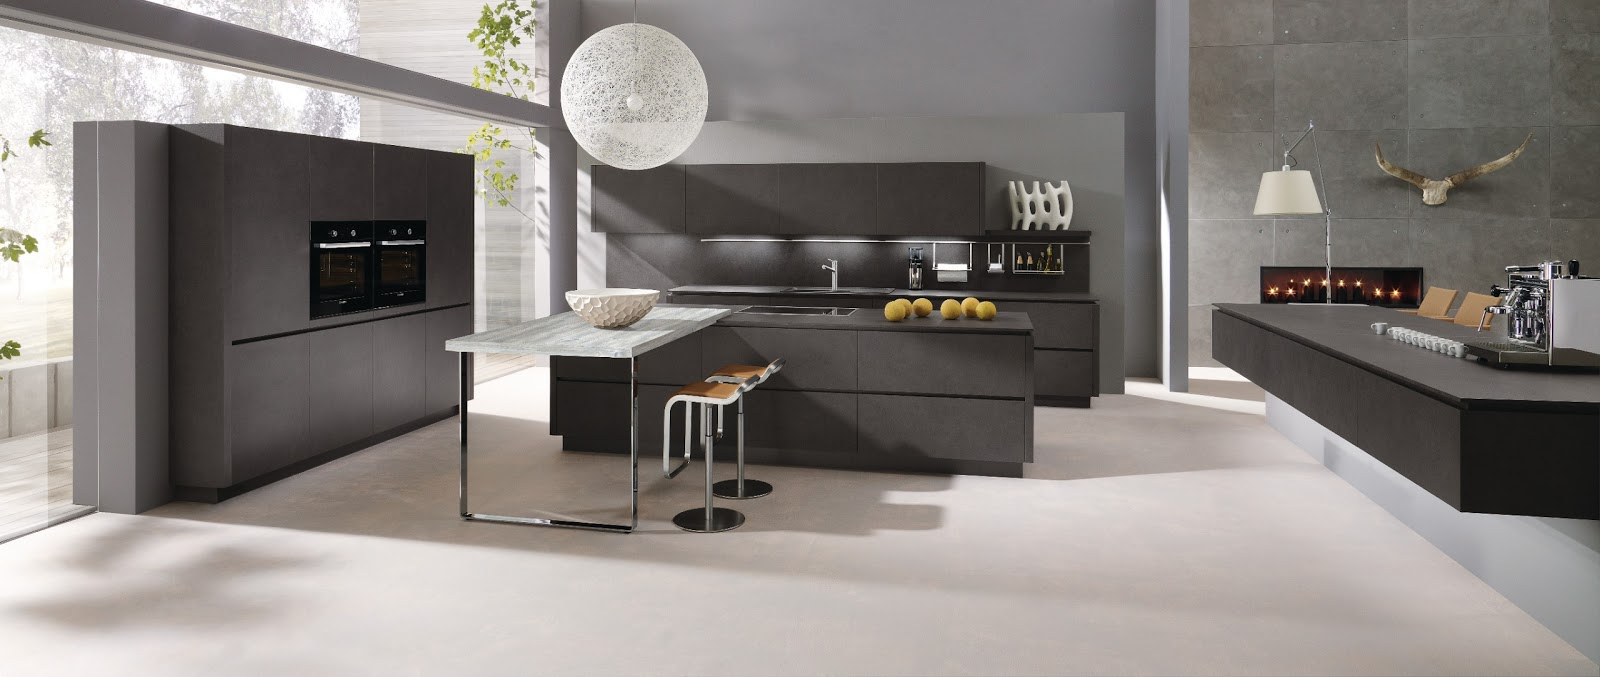 Cuisine design anthracite avec lot for Cuisine amenagee gris anthracite